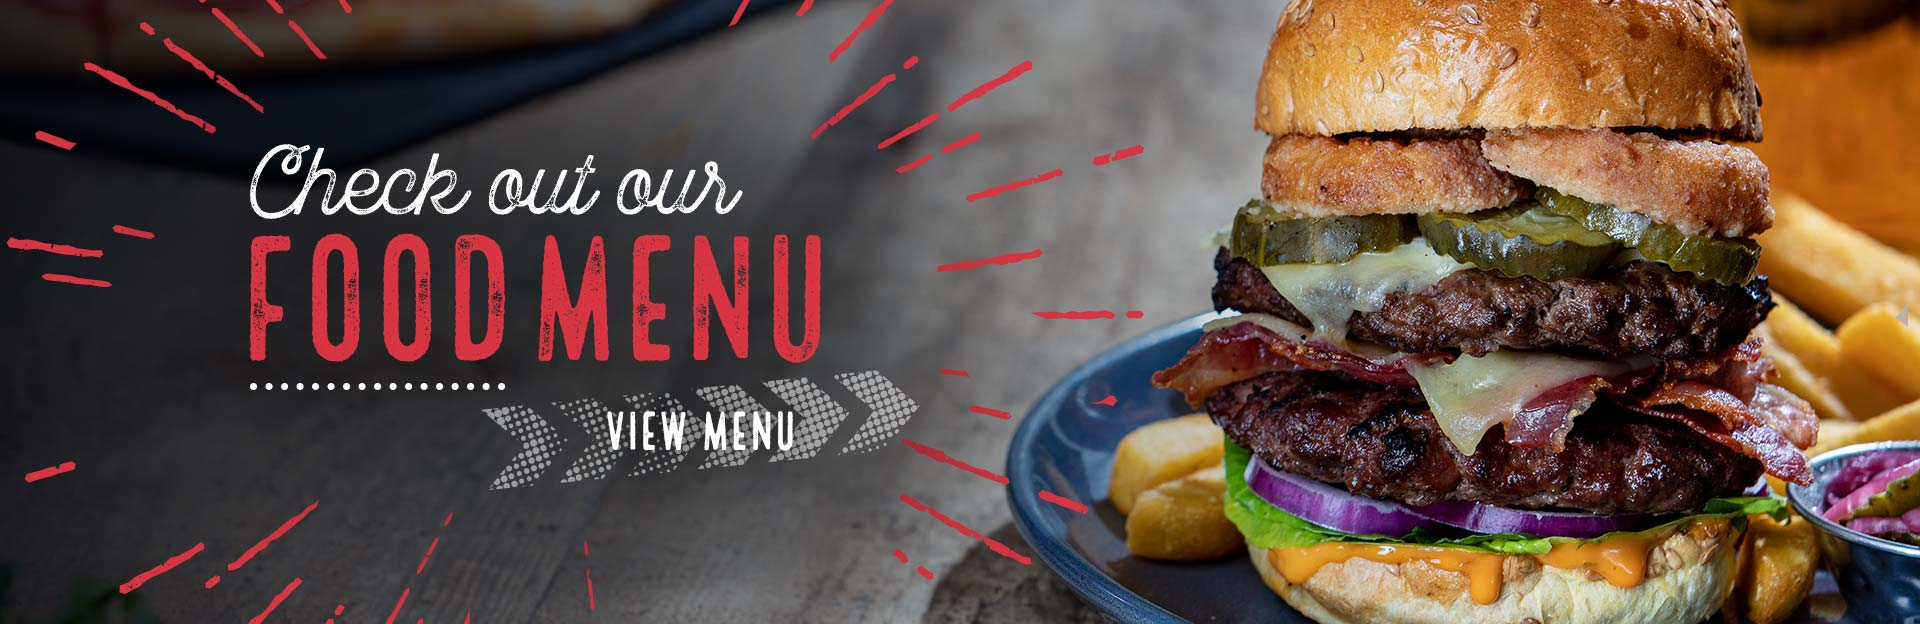 New Menu at O'Neills Leeds